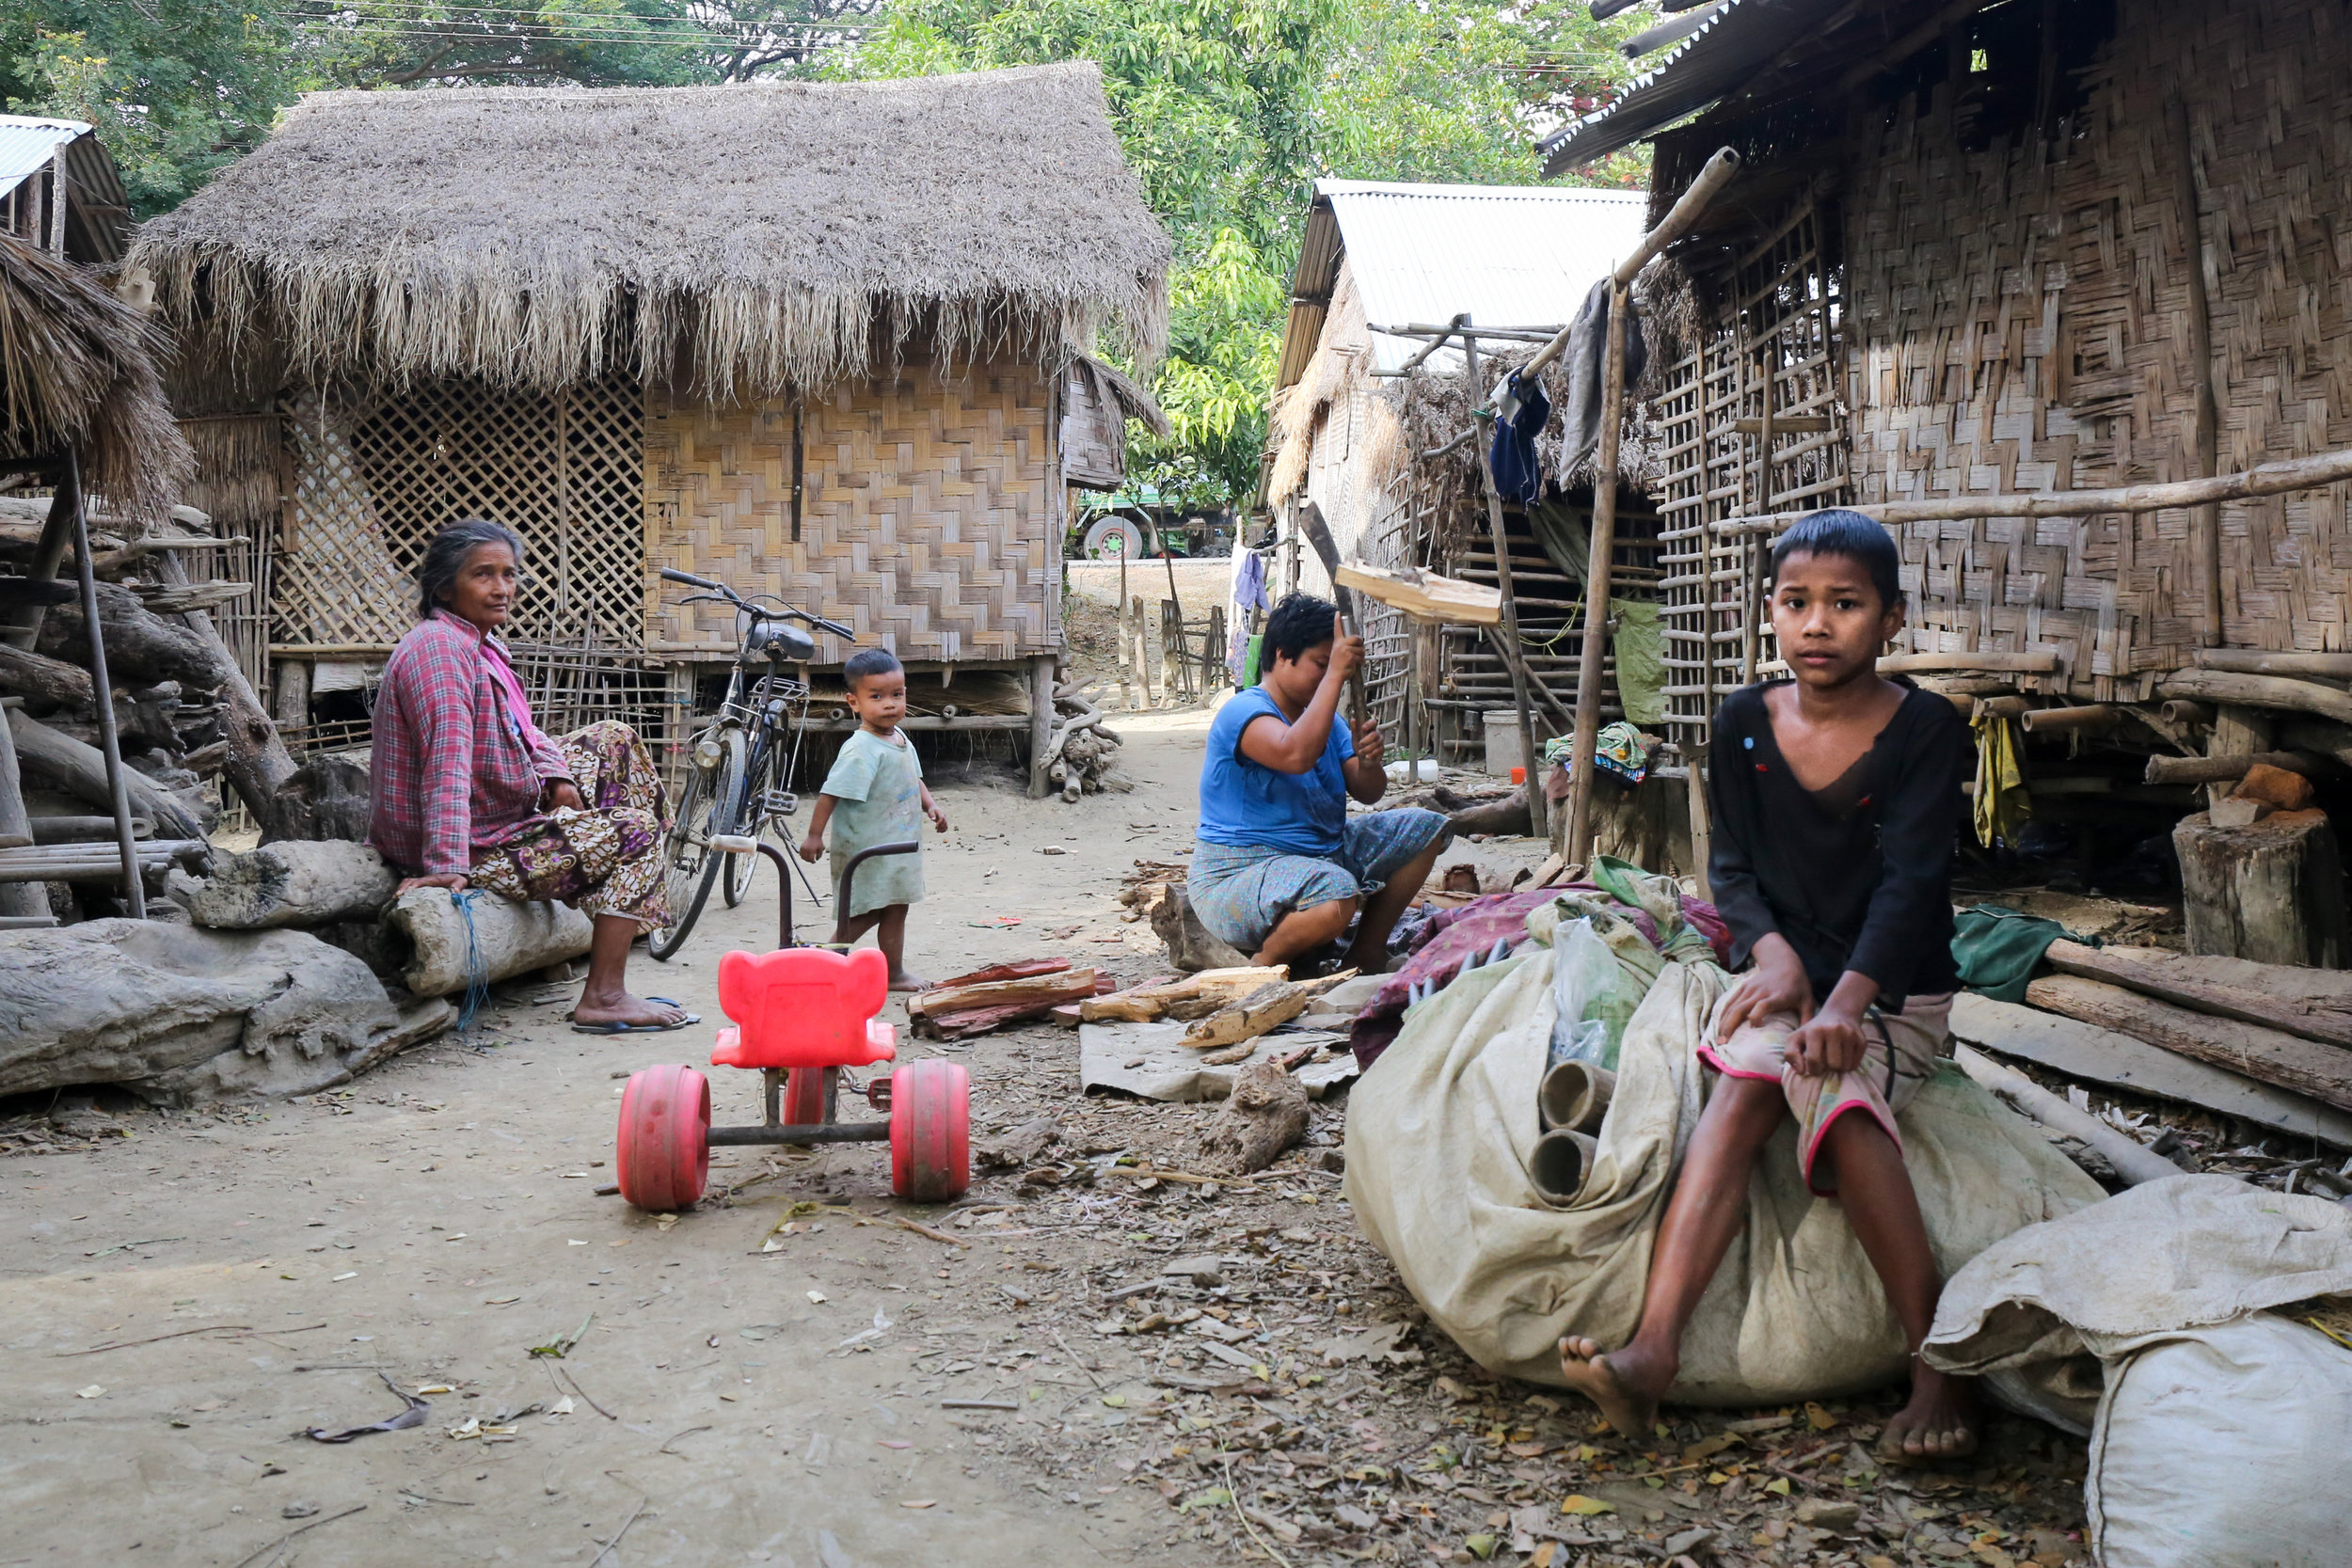 An overcrowded village along the Irrawaddy. Sand mining has contributed to bank erosion, causing coastal villages to slide into the river, with neighboring villages absorbing those displaced.